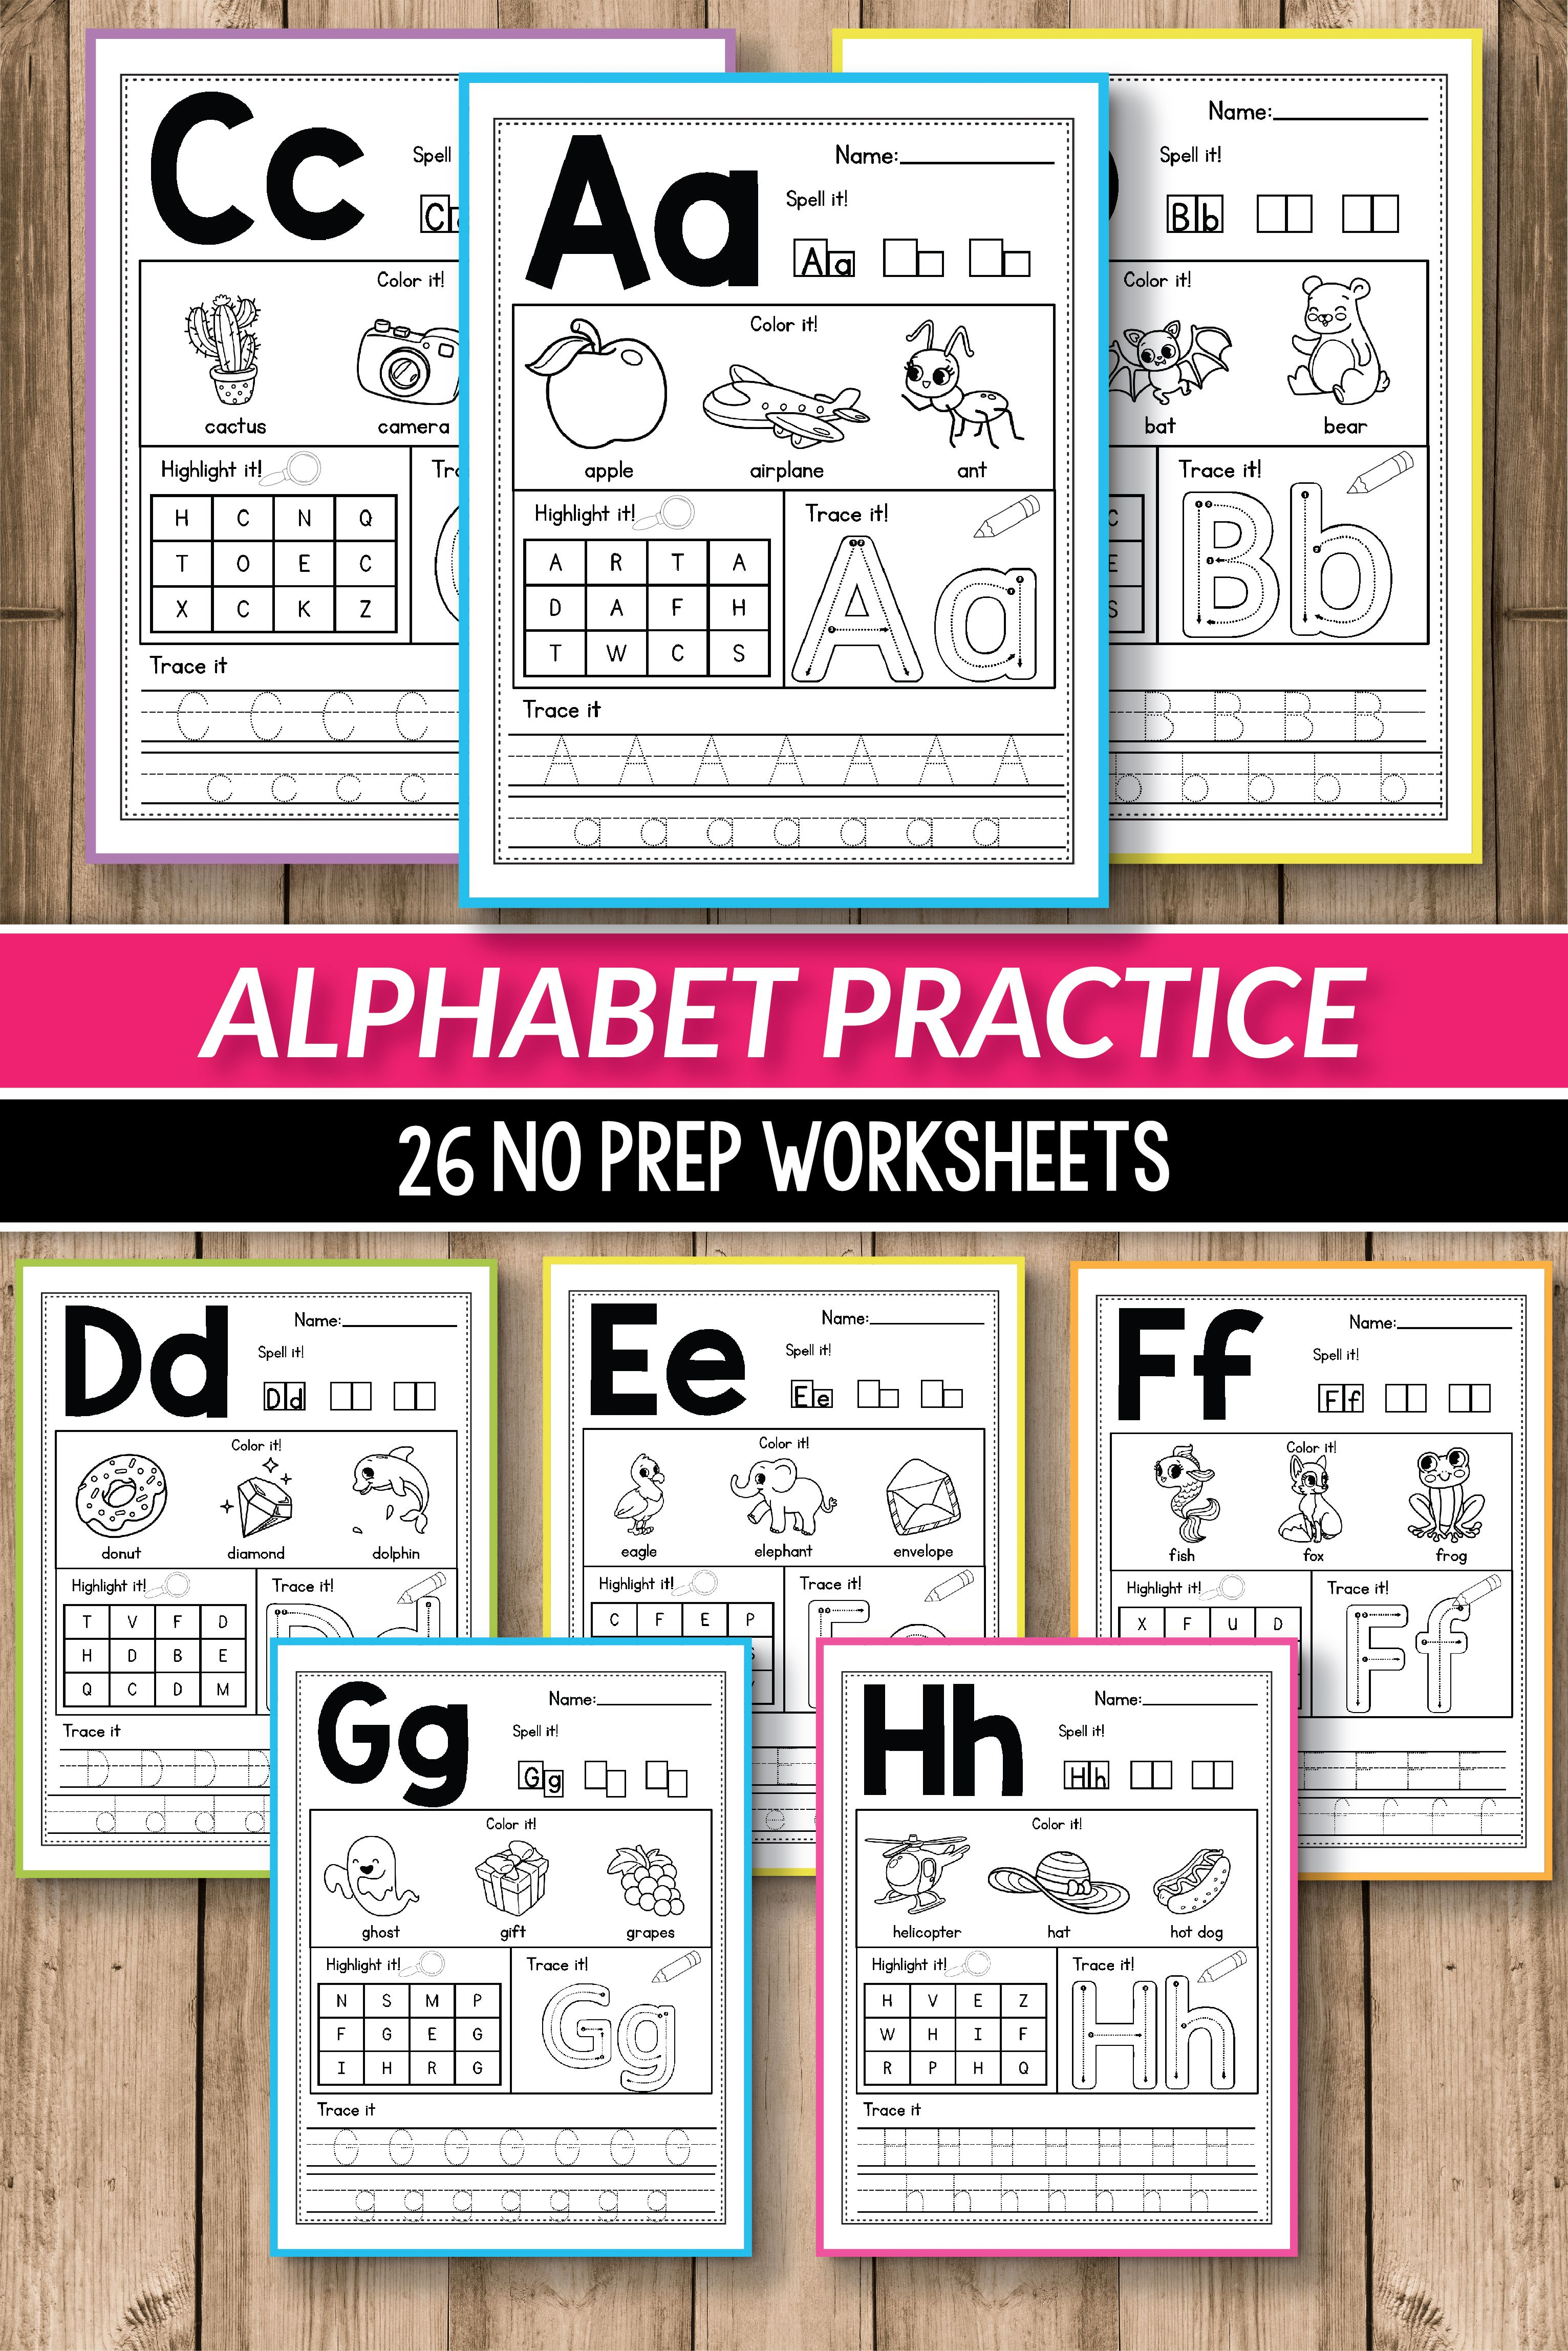 Alphabet Printable Activities For Preschool And Kindergarten These Pack Of Worksheets Will Make Teaching Practice English Uppercase Lowercase